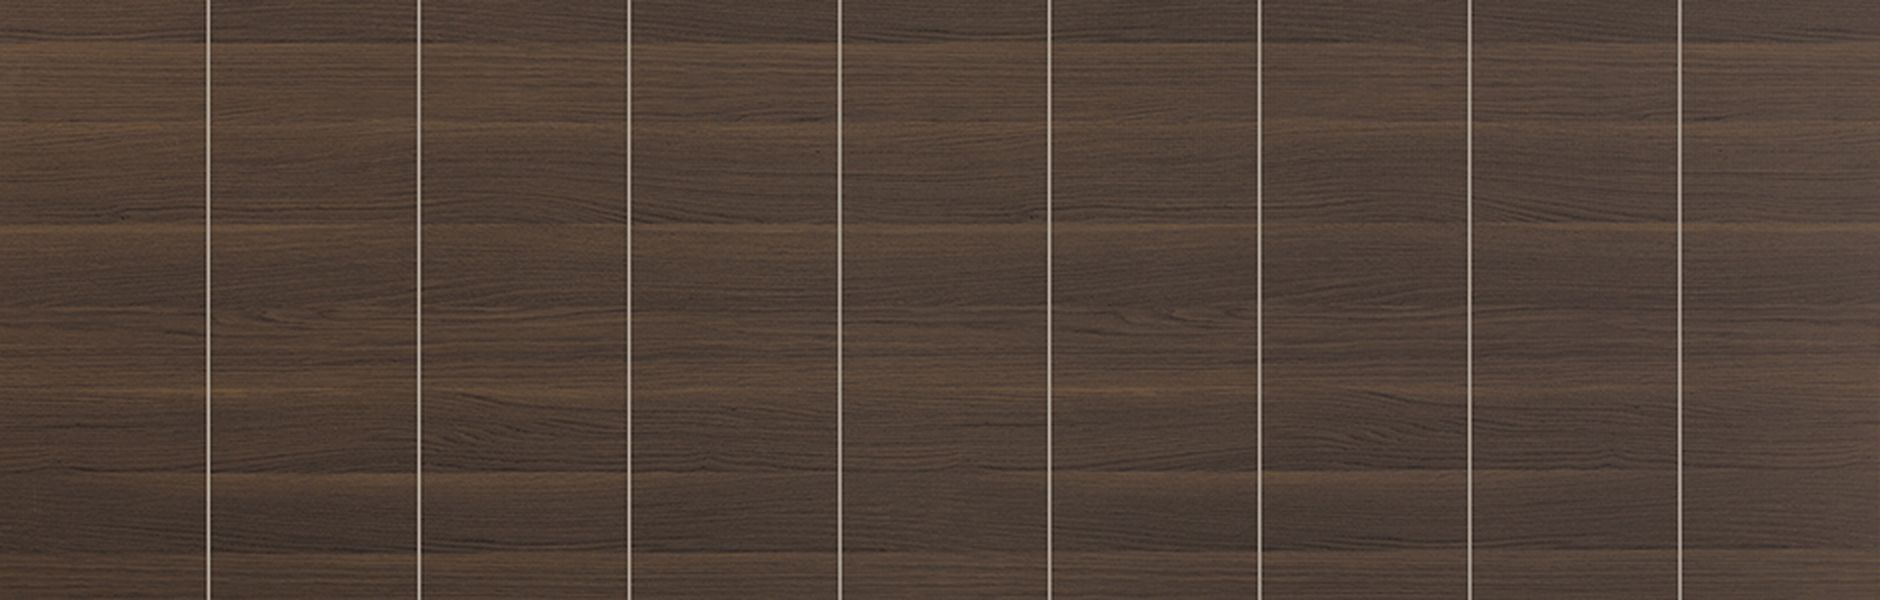 Фото 4 - Декоративные панели Sibu WoodLine nutwood